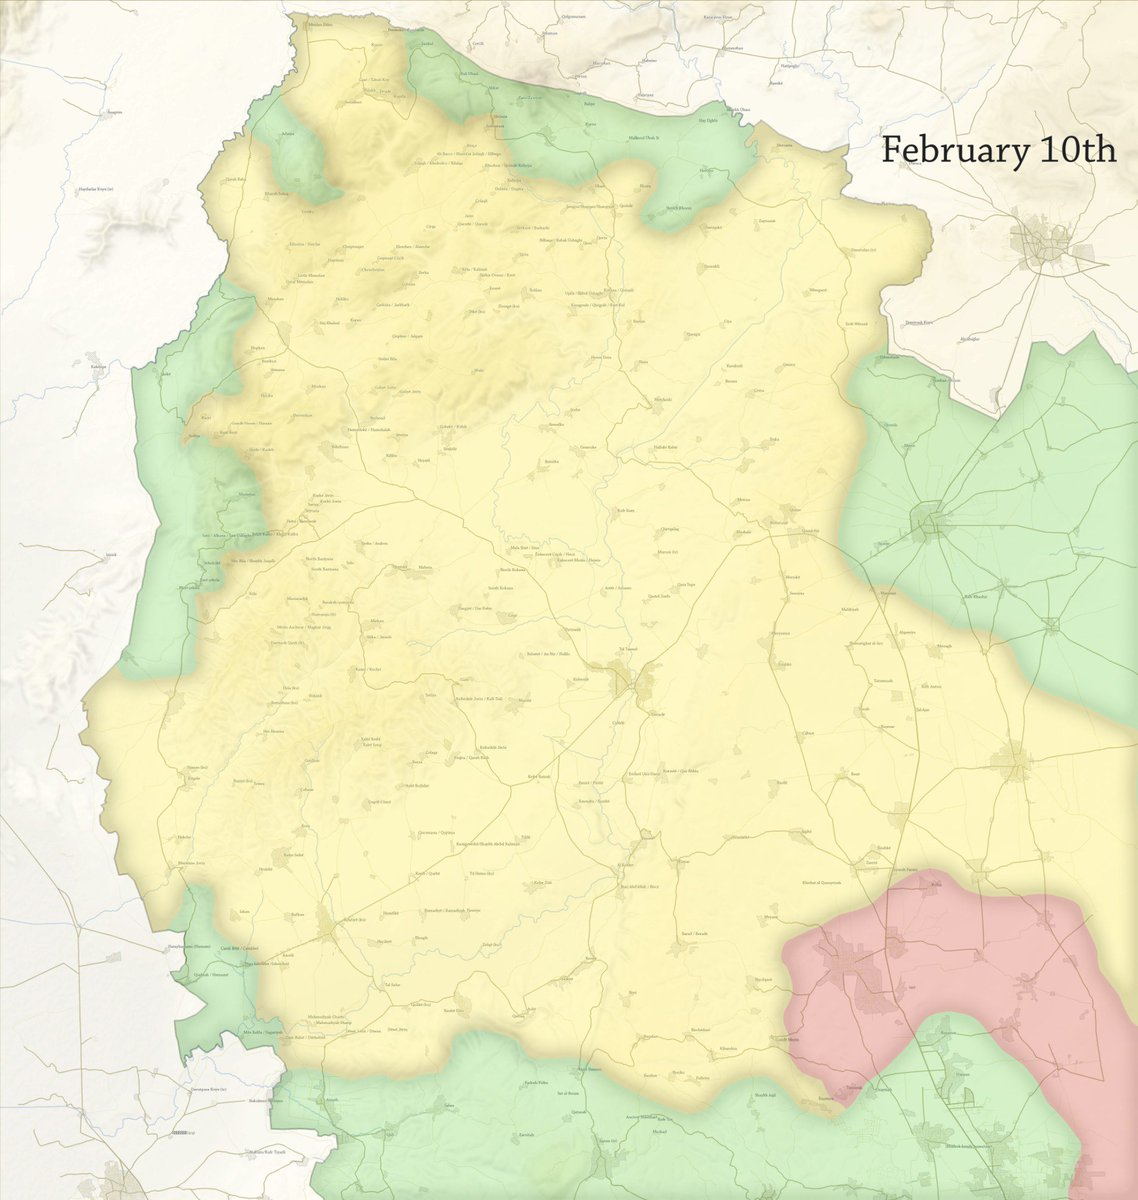 Nathan Ruser on Twitter Map The approximate situation in Afrin